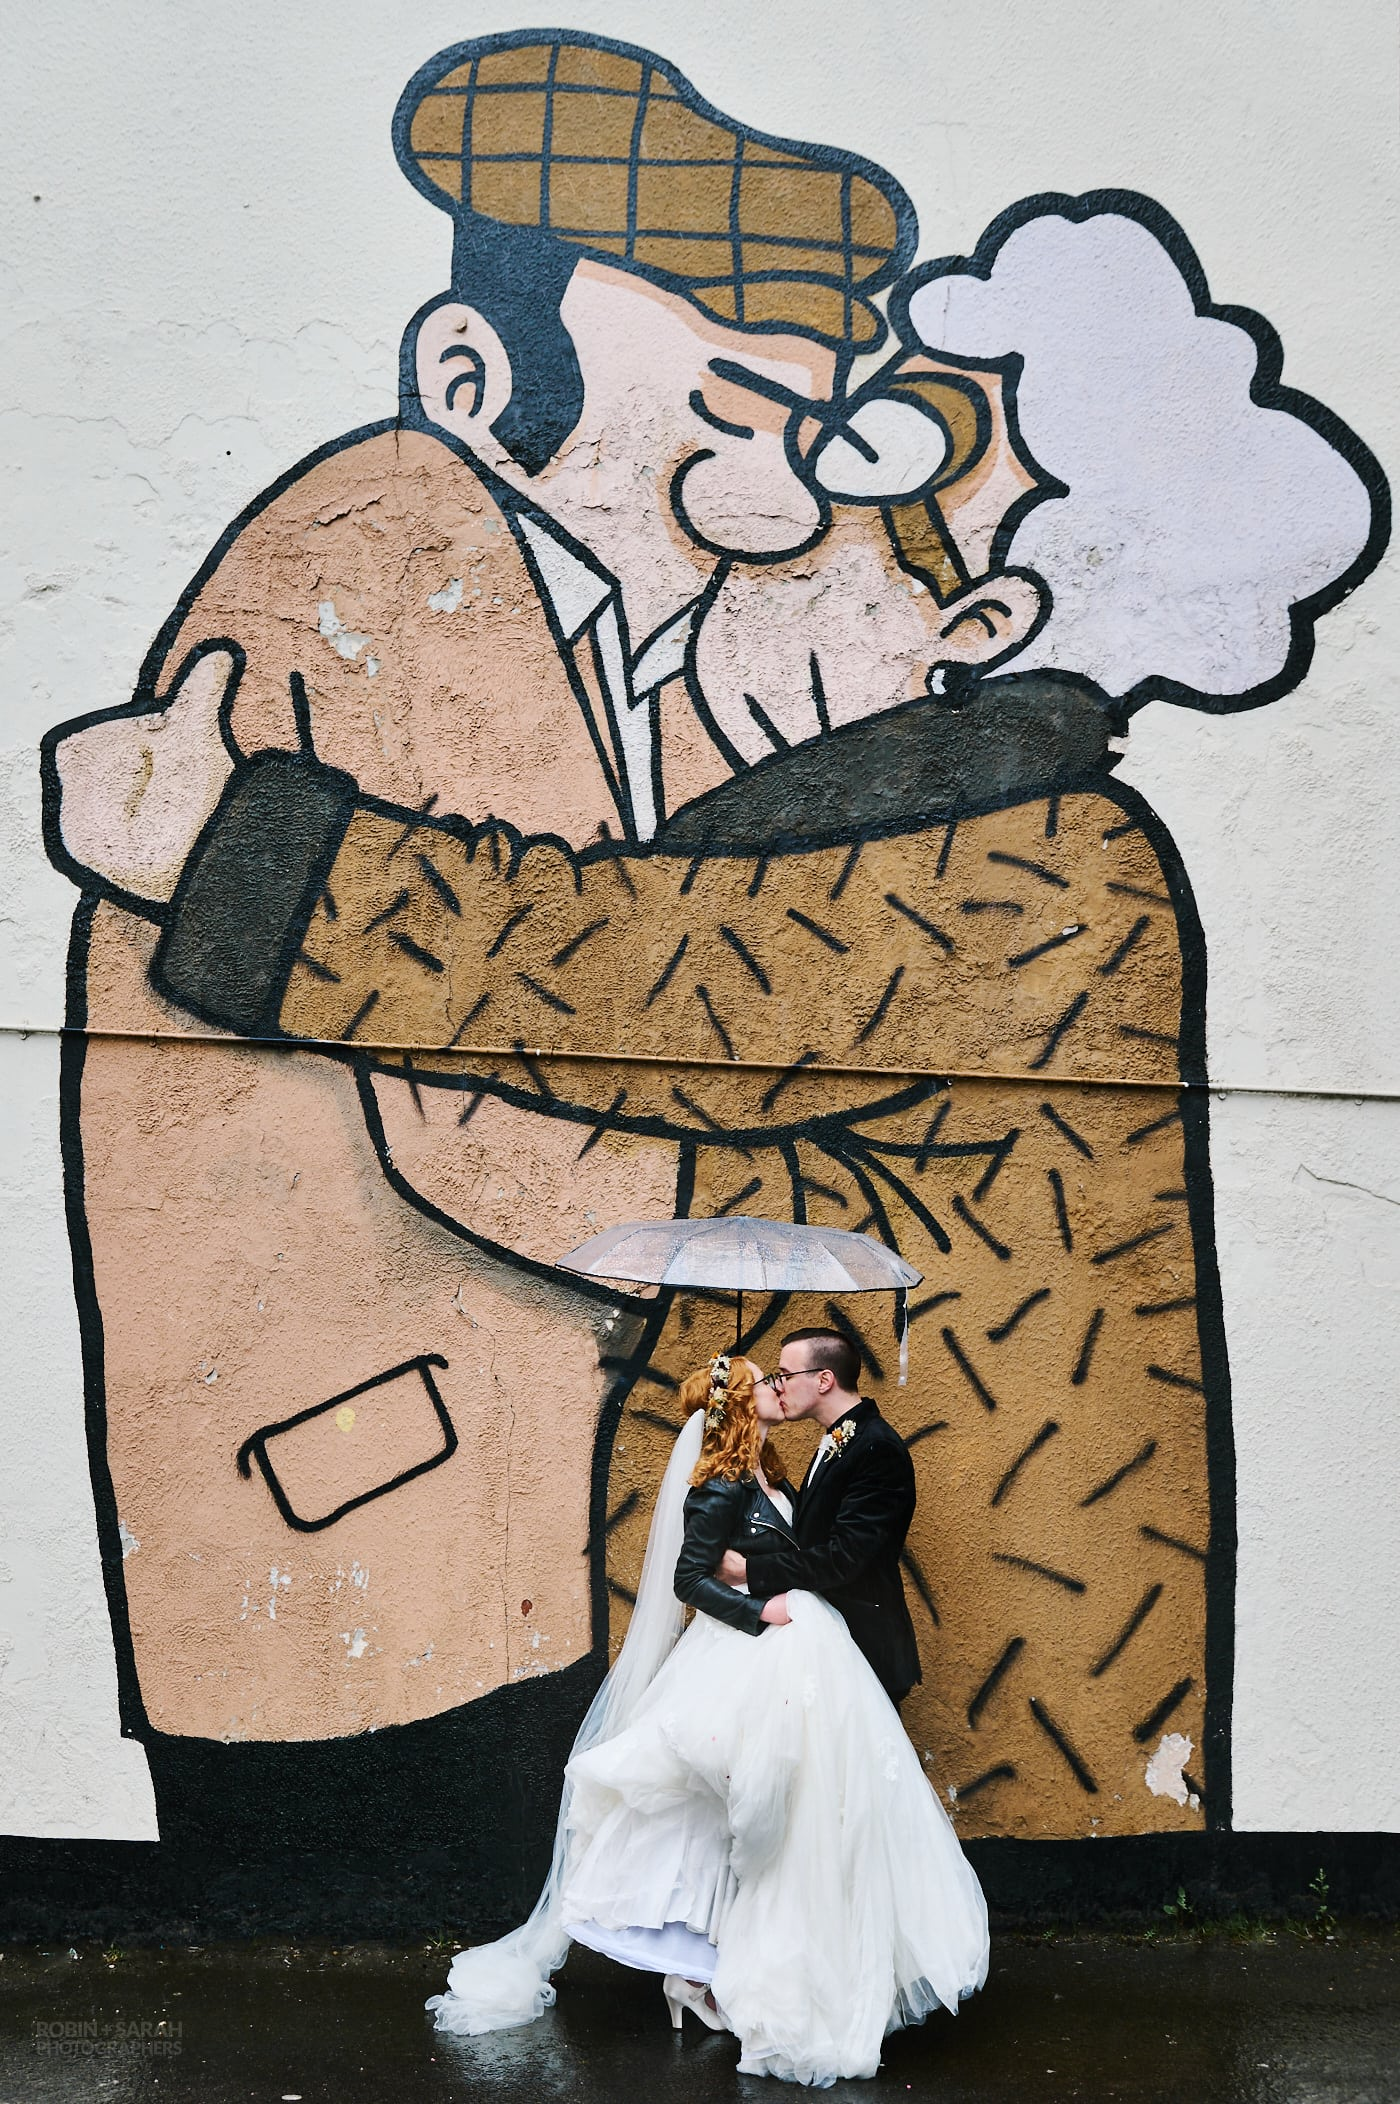 Newly married bride and groom kiss under umbrella in front of artwork 'The Snog' by Pete McKee in Sheffield